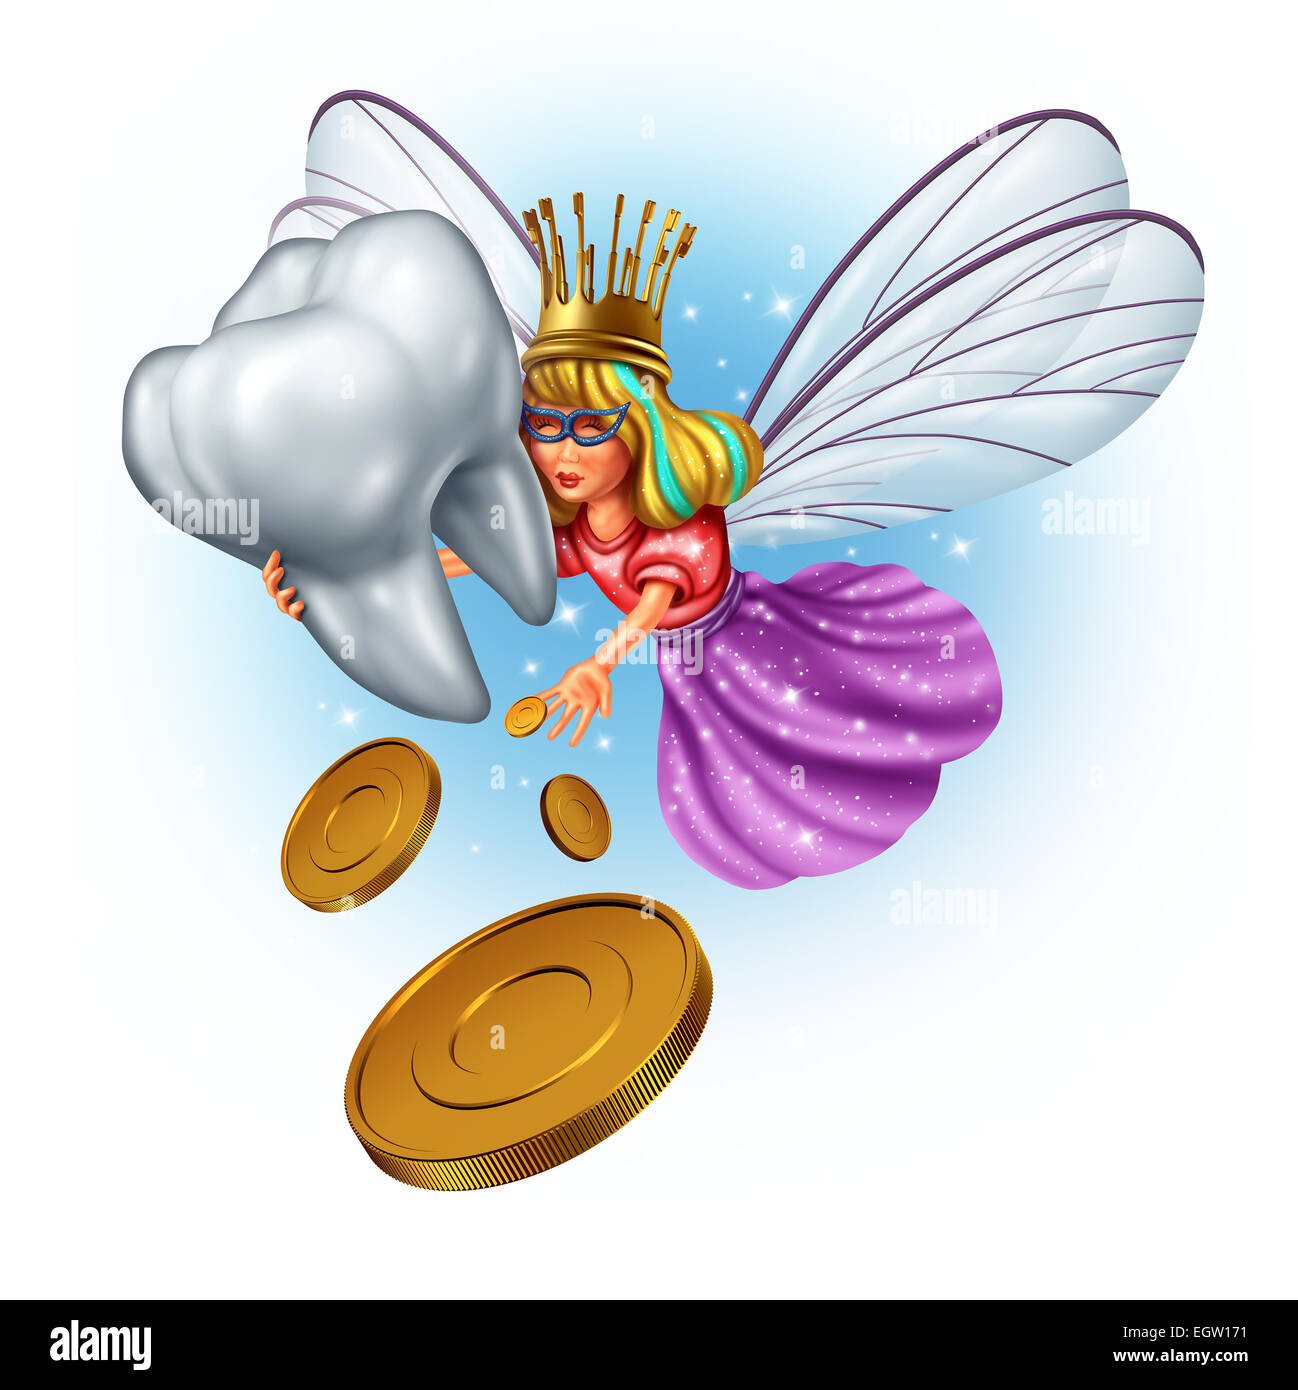 Tooth fairy character as a mythical and magical princess wearing a golden tooth brush crown from a childhood fairytale - Stock Image